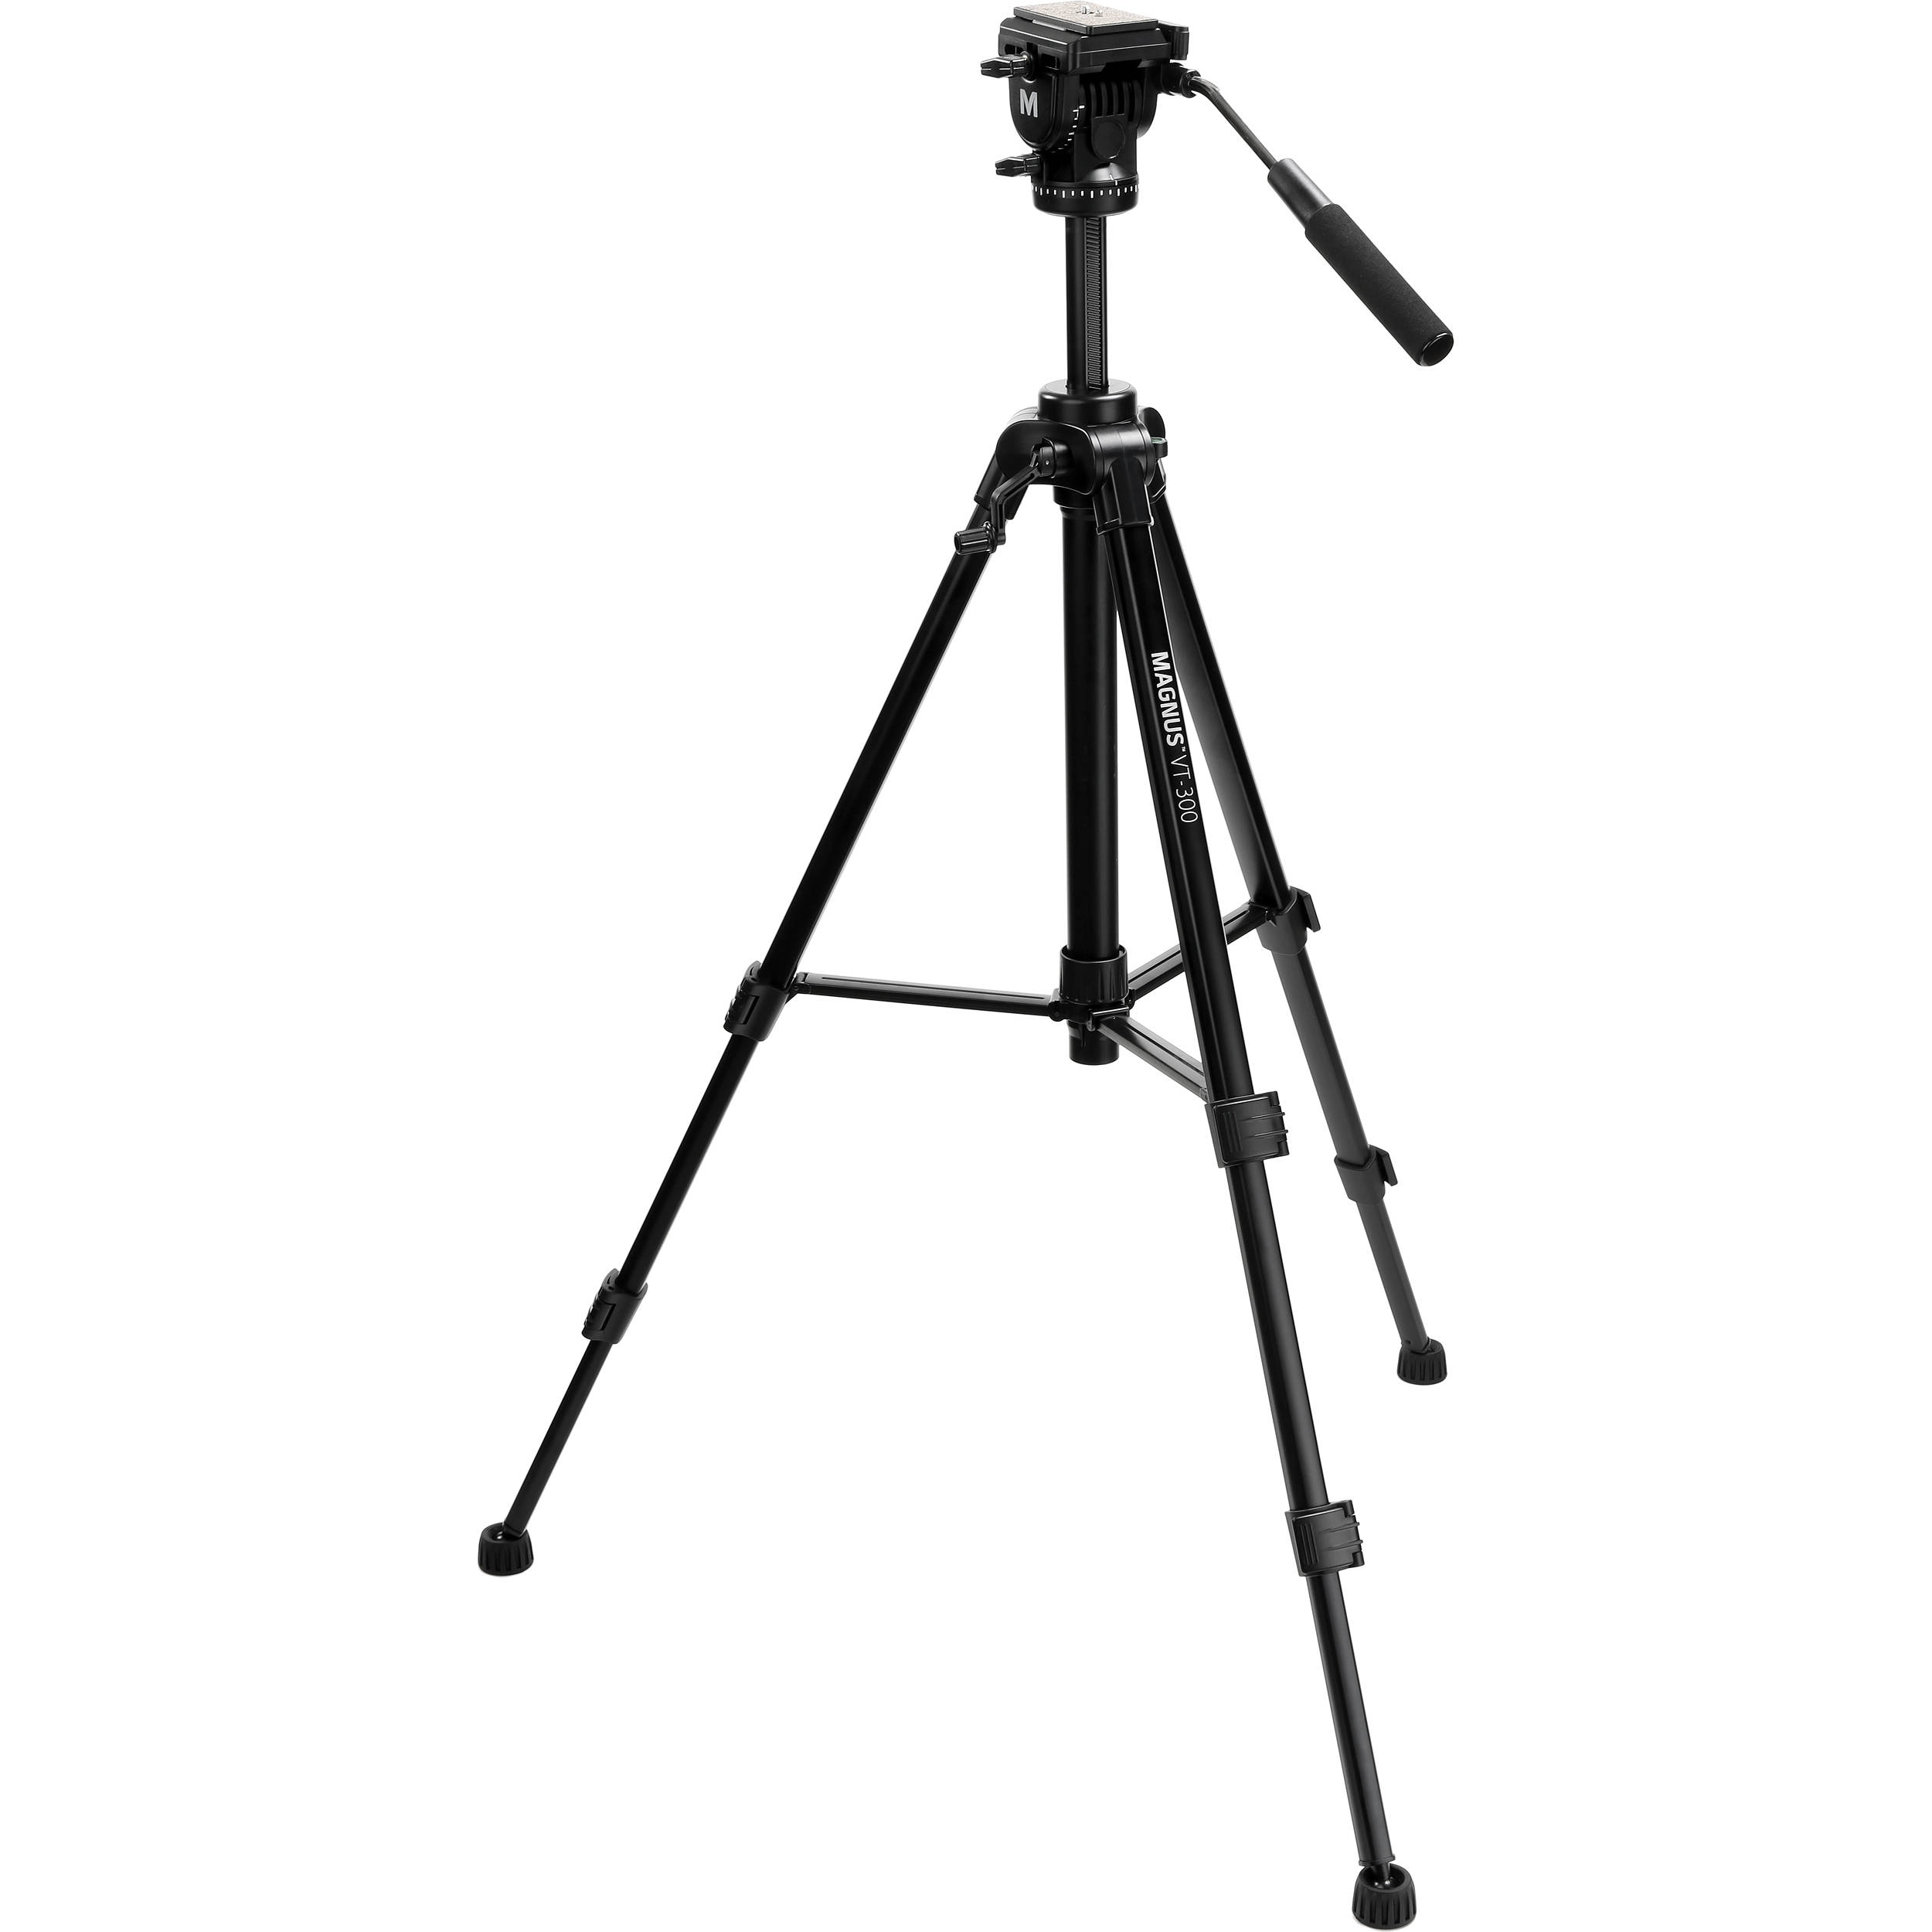 Magnus VT-350 Video Tripod with Fluid Head 2 Pack